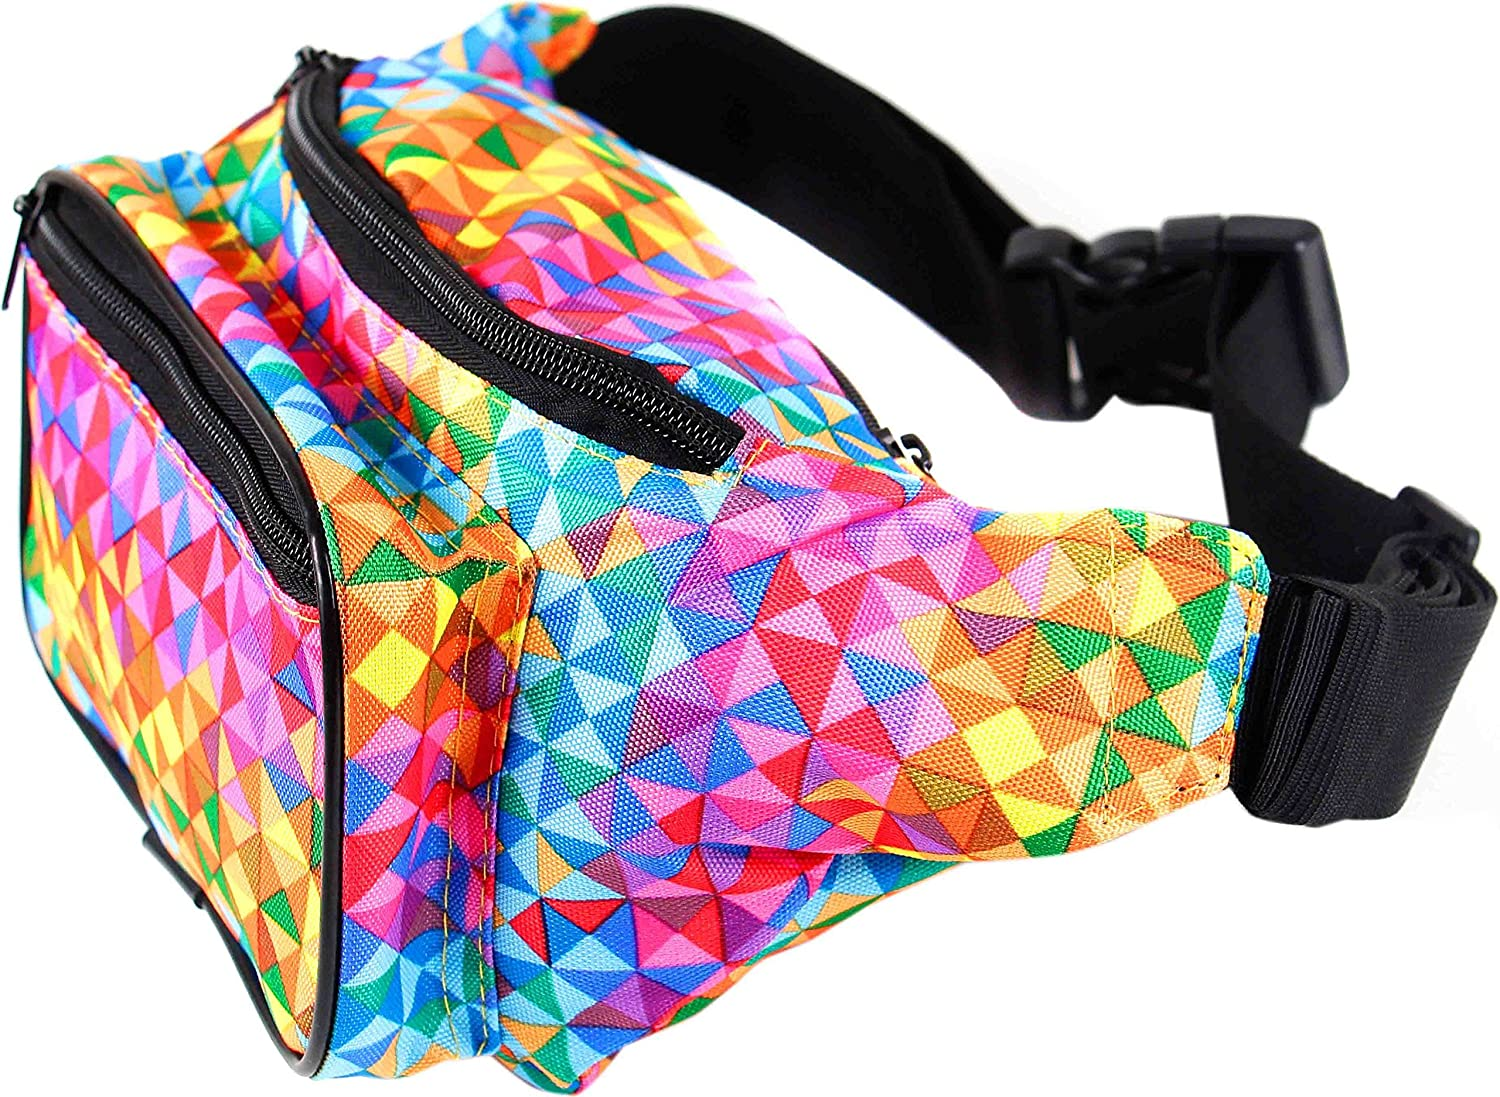 Irredescent Rainbow Best Gift Ideas Holographic Reflective Chameleon Effect 2 Pouches Adjustable Belt FannyPack Luminous